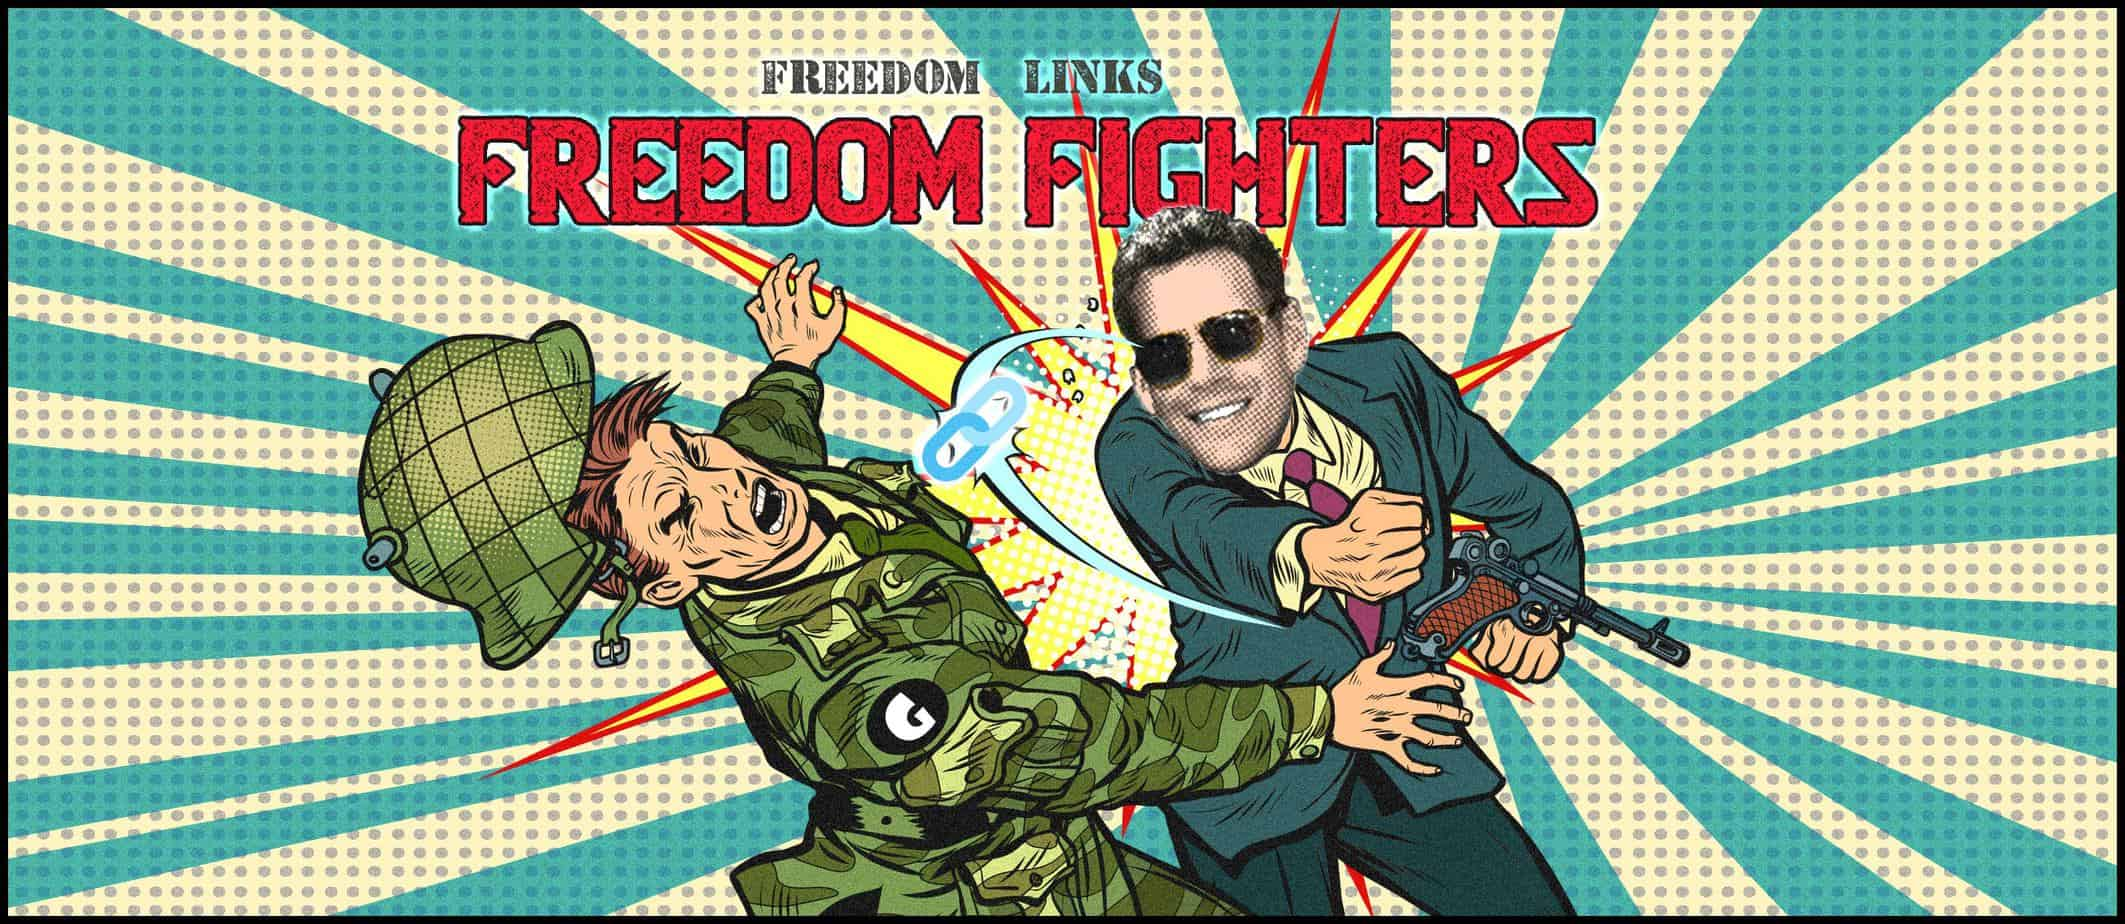 Freedom-Links-Freedom-Fighters